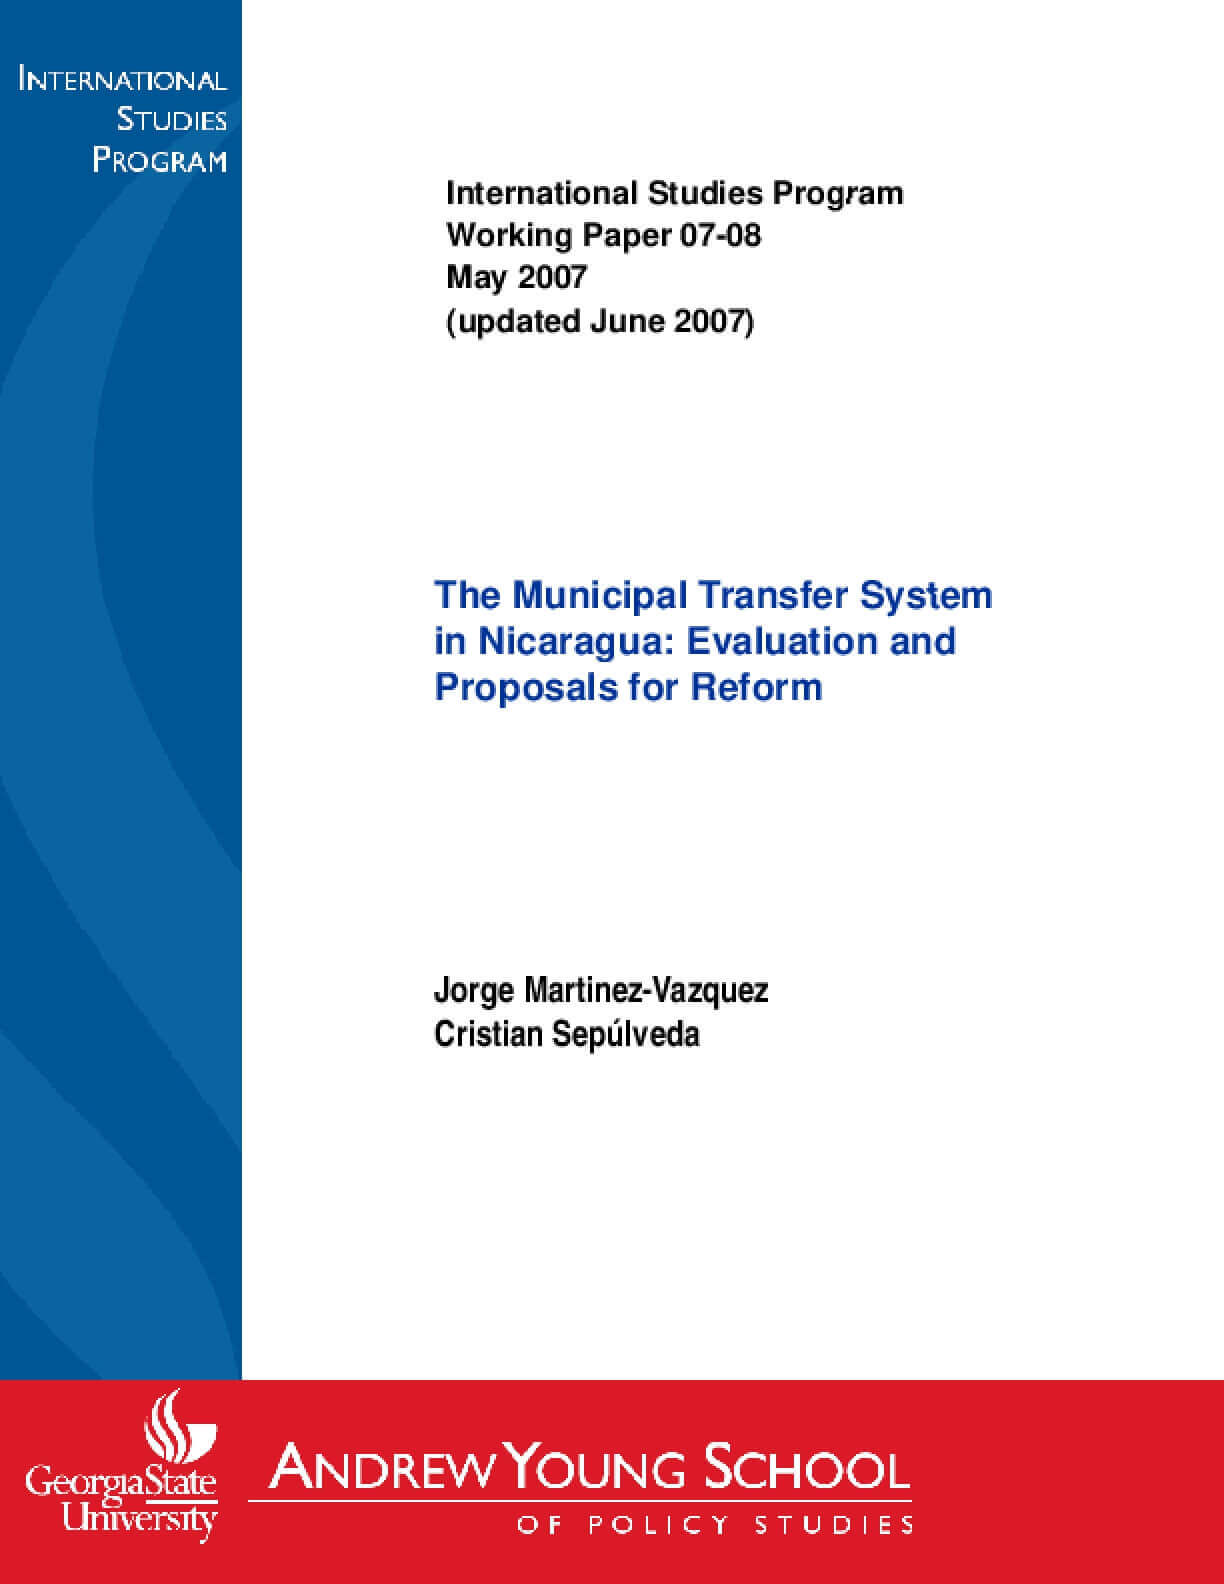 The Municipal Transfer System in Nicaragua: Evaluation and Proposals for Reform